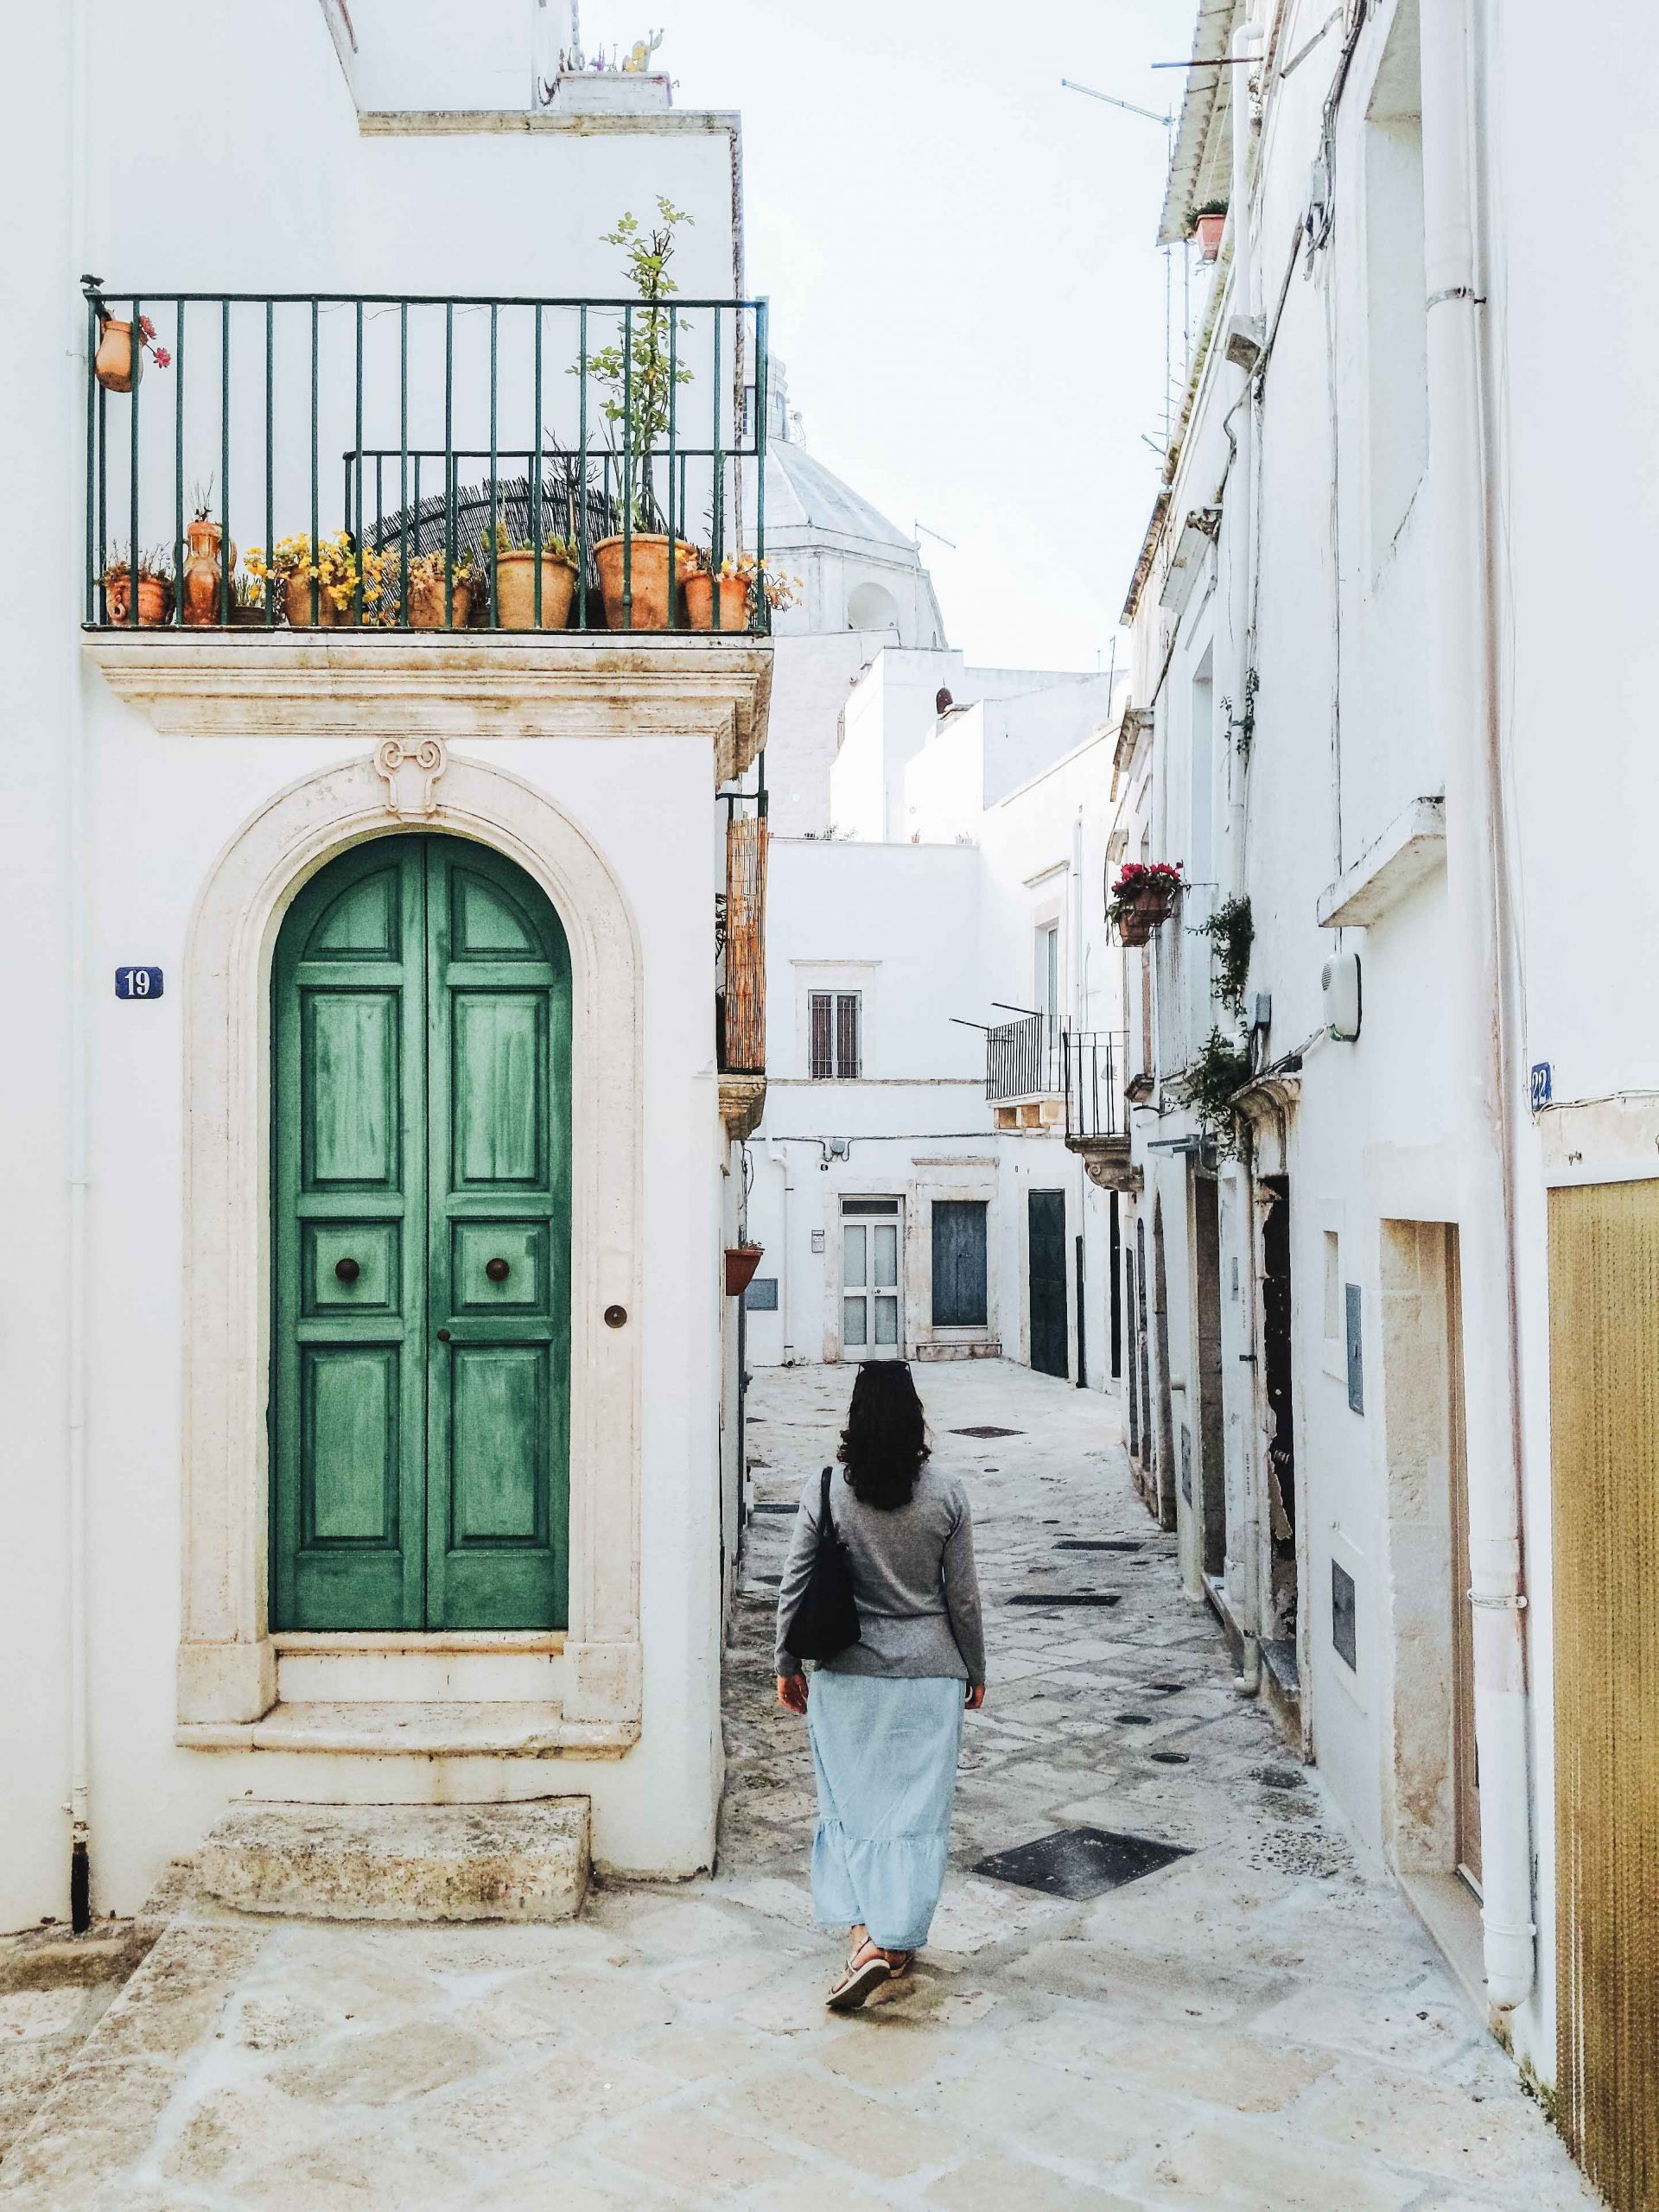 The old quarter of Martina Franca with winding alleys and white washed buildings | Valle d'Itria | A 7-day Road Trip Through Puglia | Mondomulia